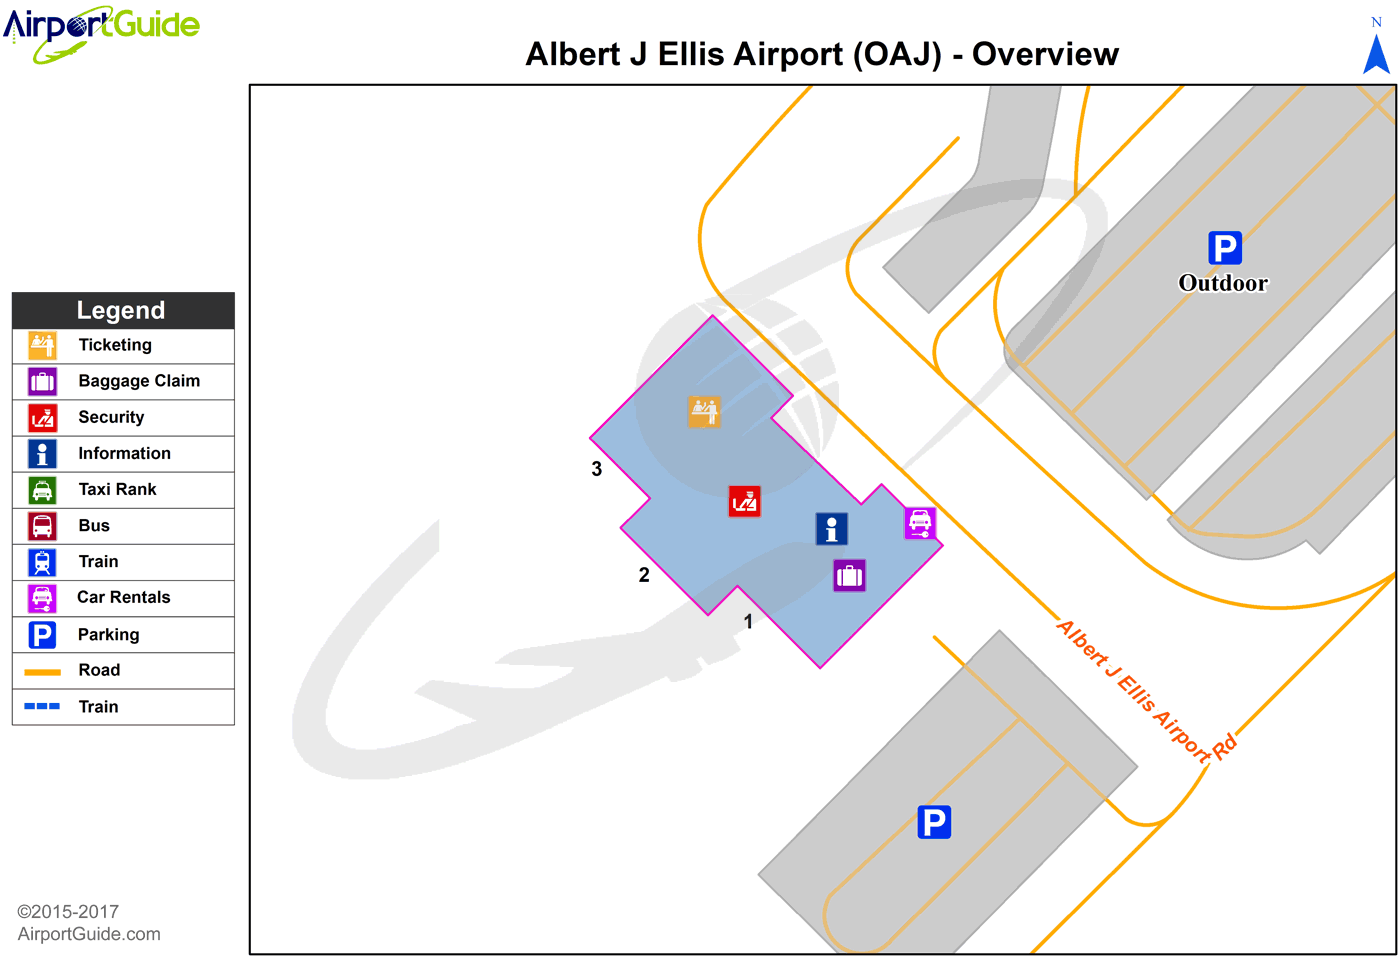 Jacksonville - Albert J Ellis (OAJ) Airport Terminal Map - Overview